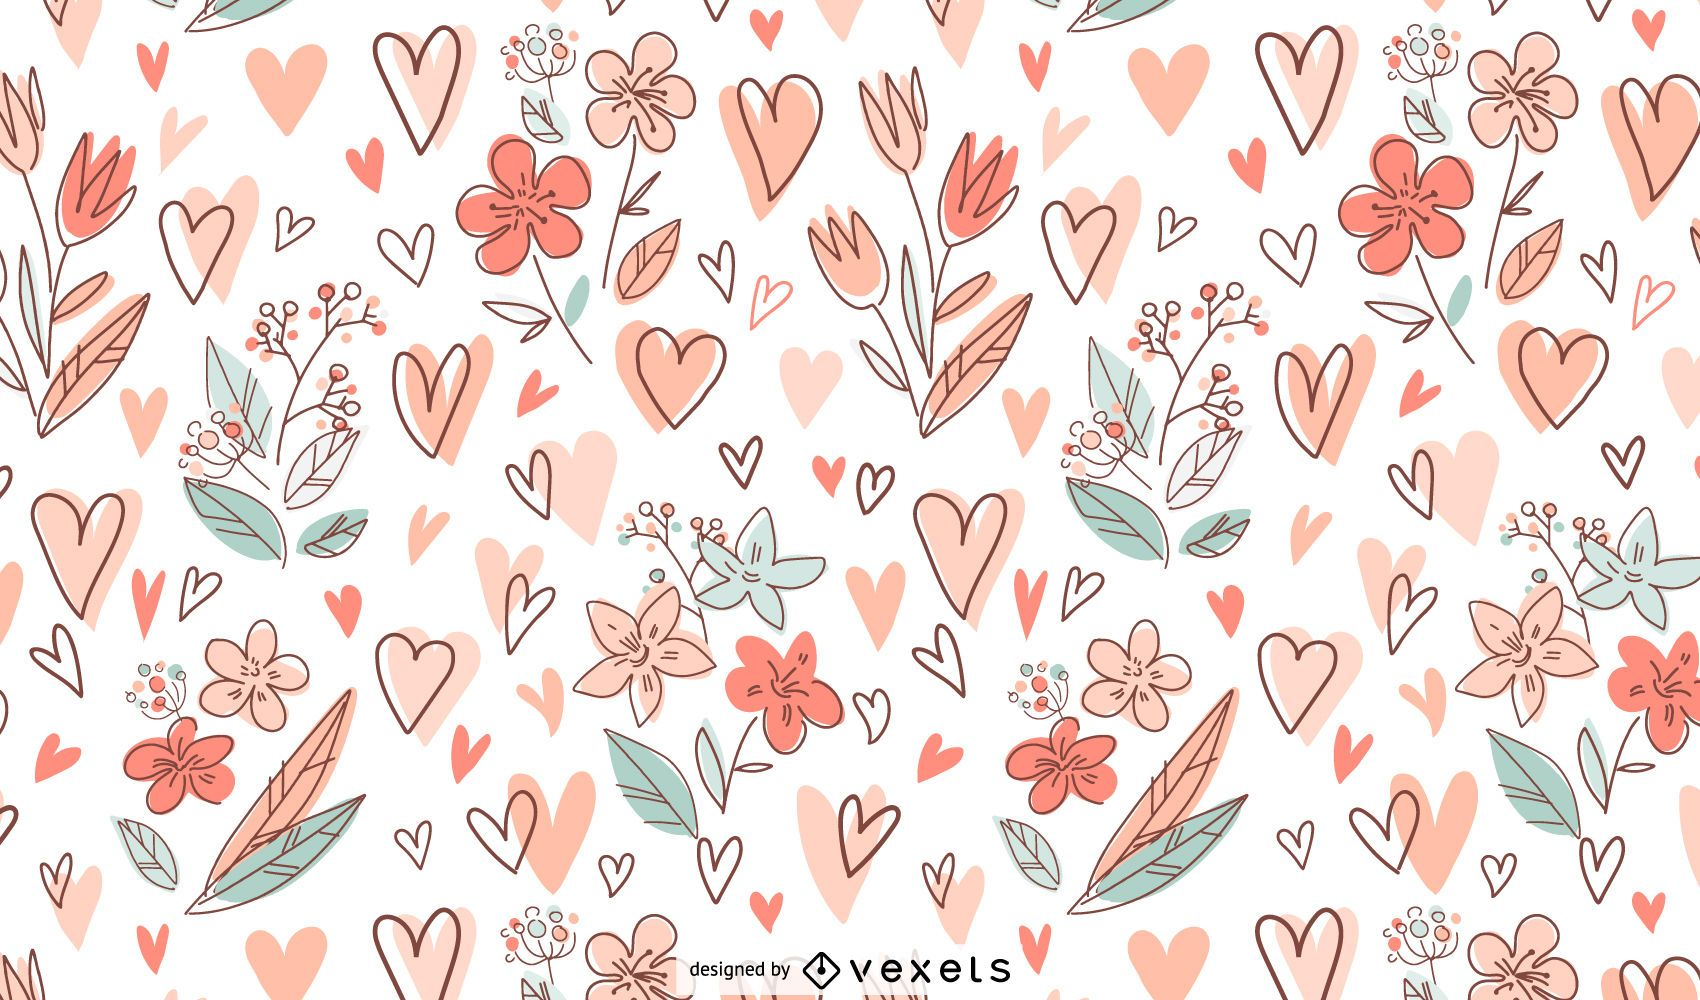 Flowers and hearts pattern design